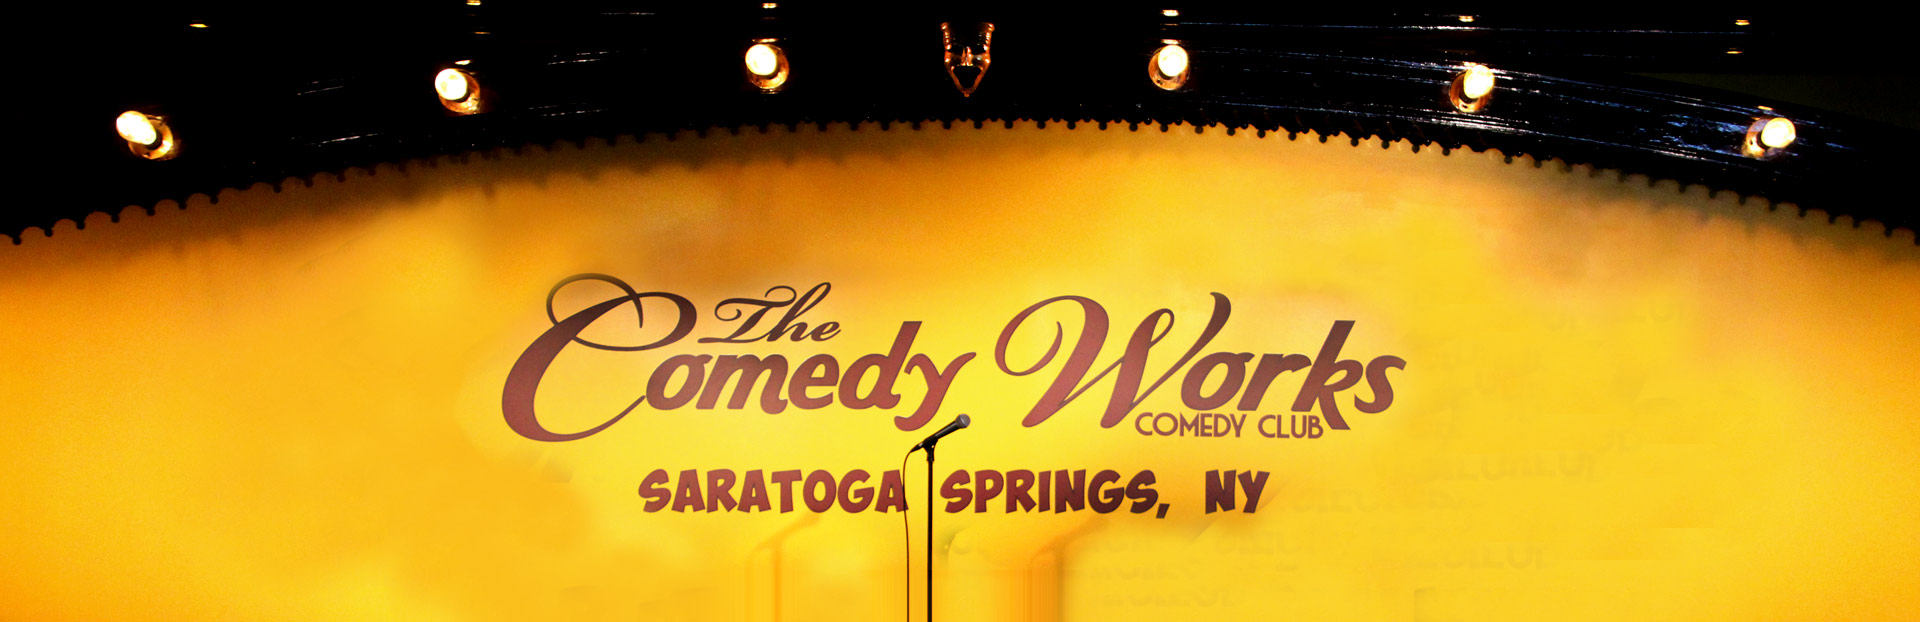 TheComedyWorks - Saratoga Springs, NY